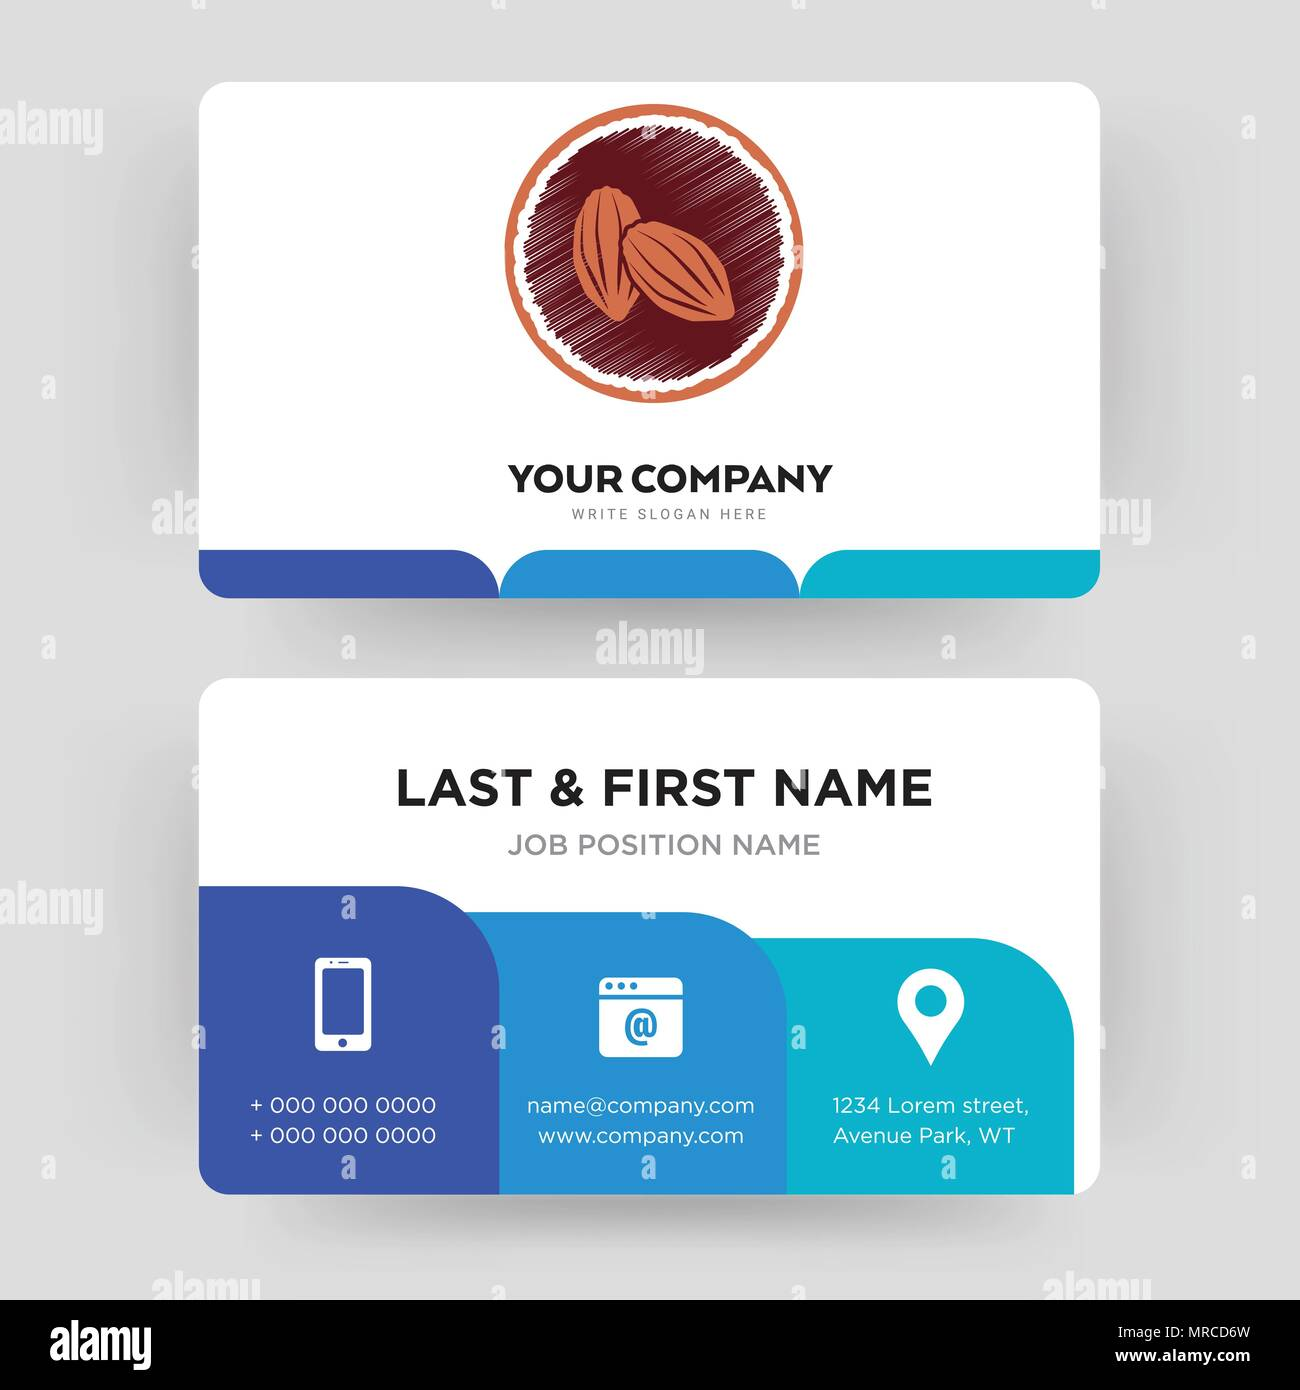 Cacao business card design template visiting for your company cacao business card design template visiting for your company modern creative and clean identity card vector colourmoves